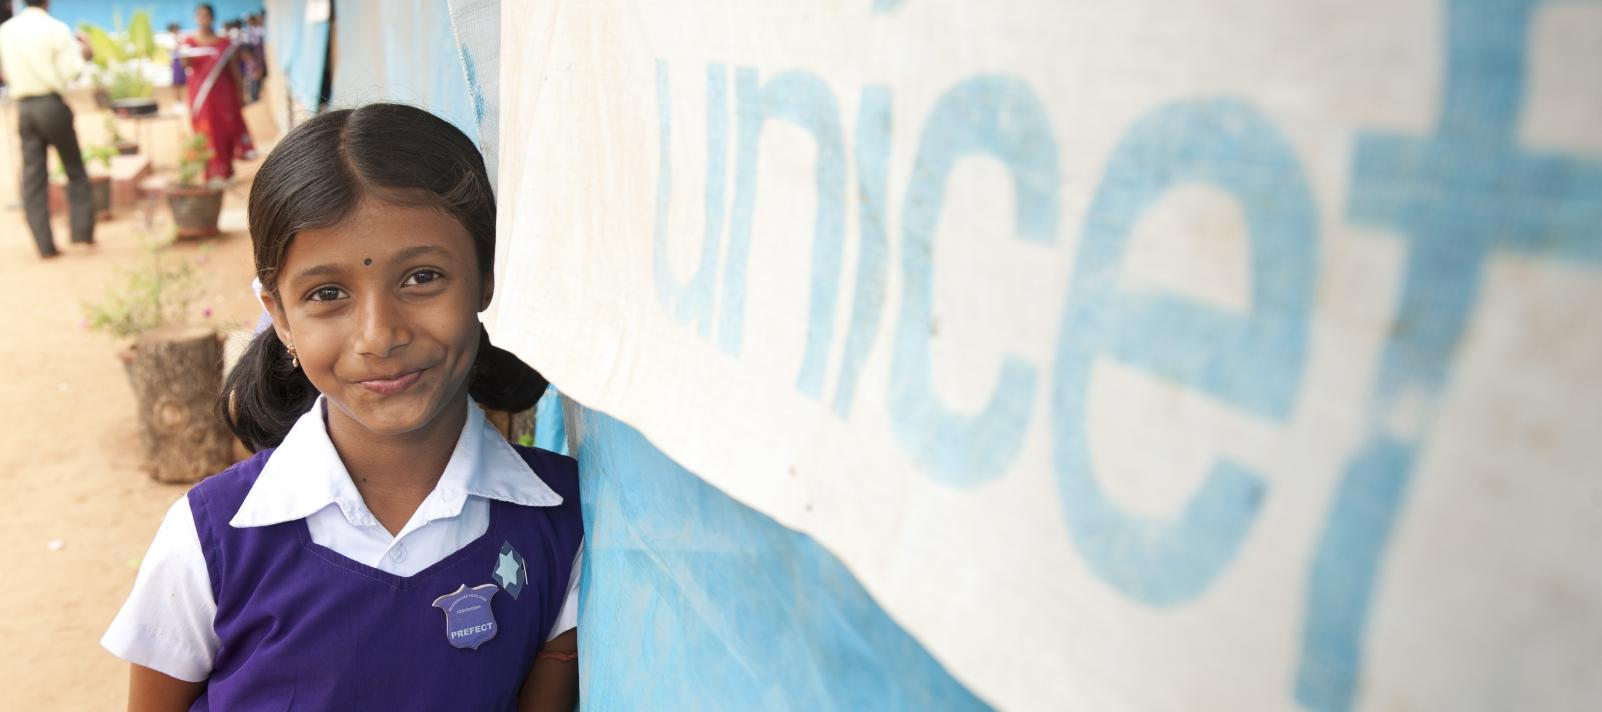 Girl standing next to a UNICEF banner